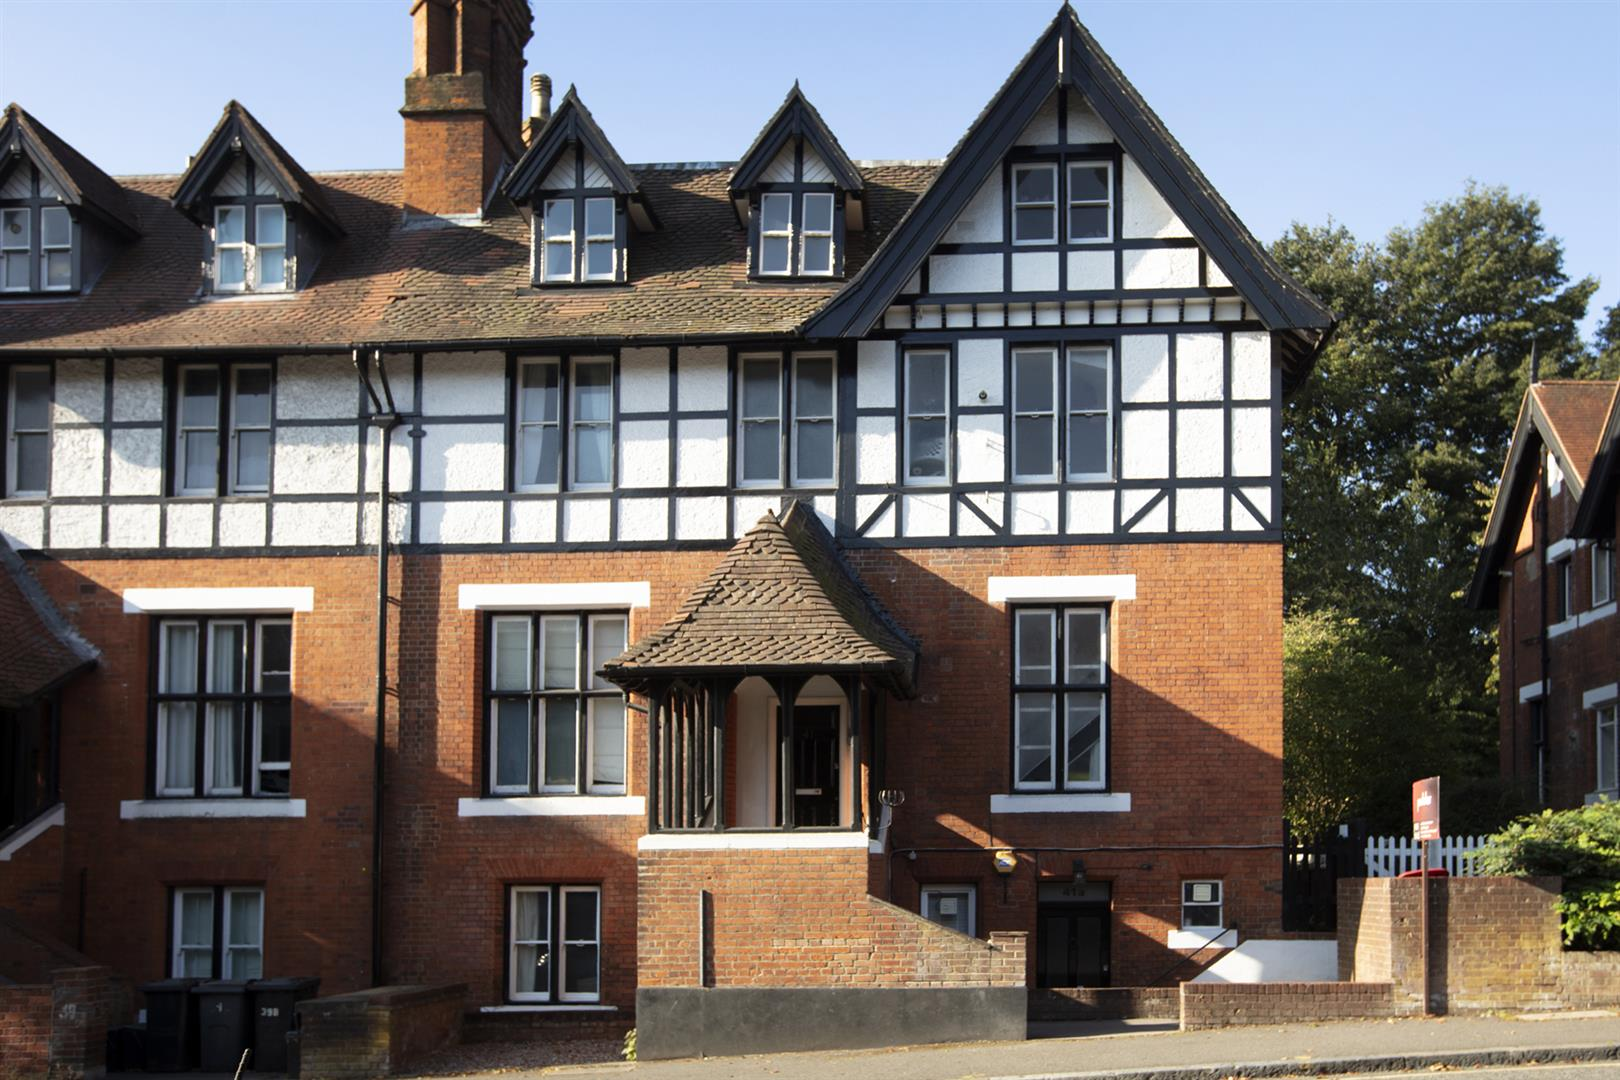 Flat - Conversion For Sale in Crystal Palace Park Road, Sydenham, SE26 698 view1